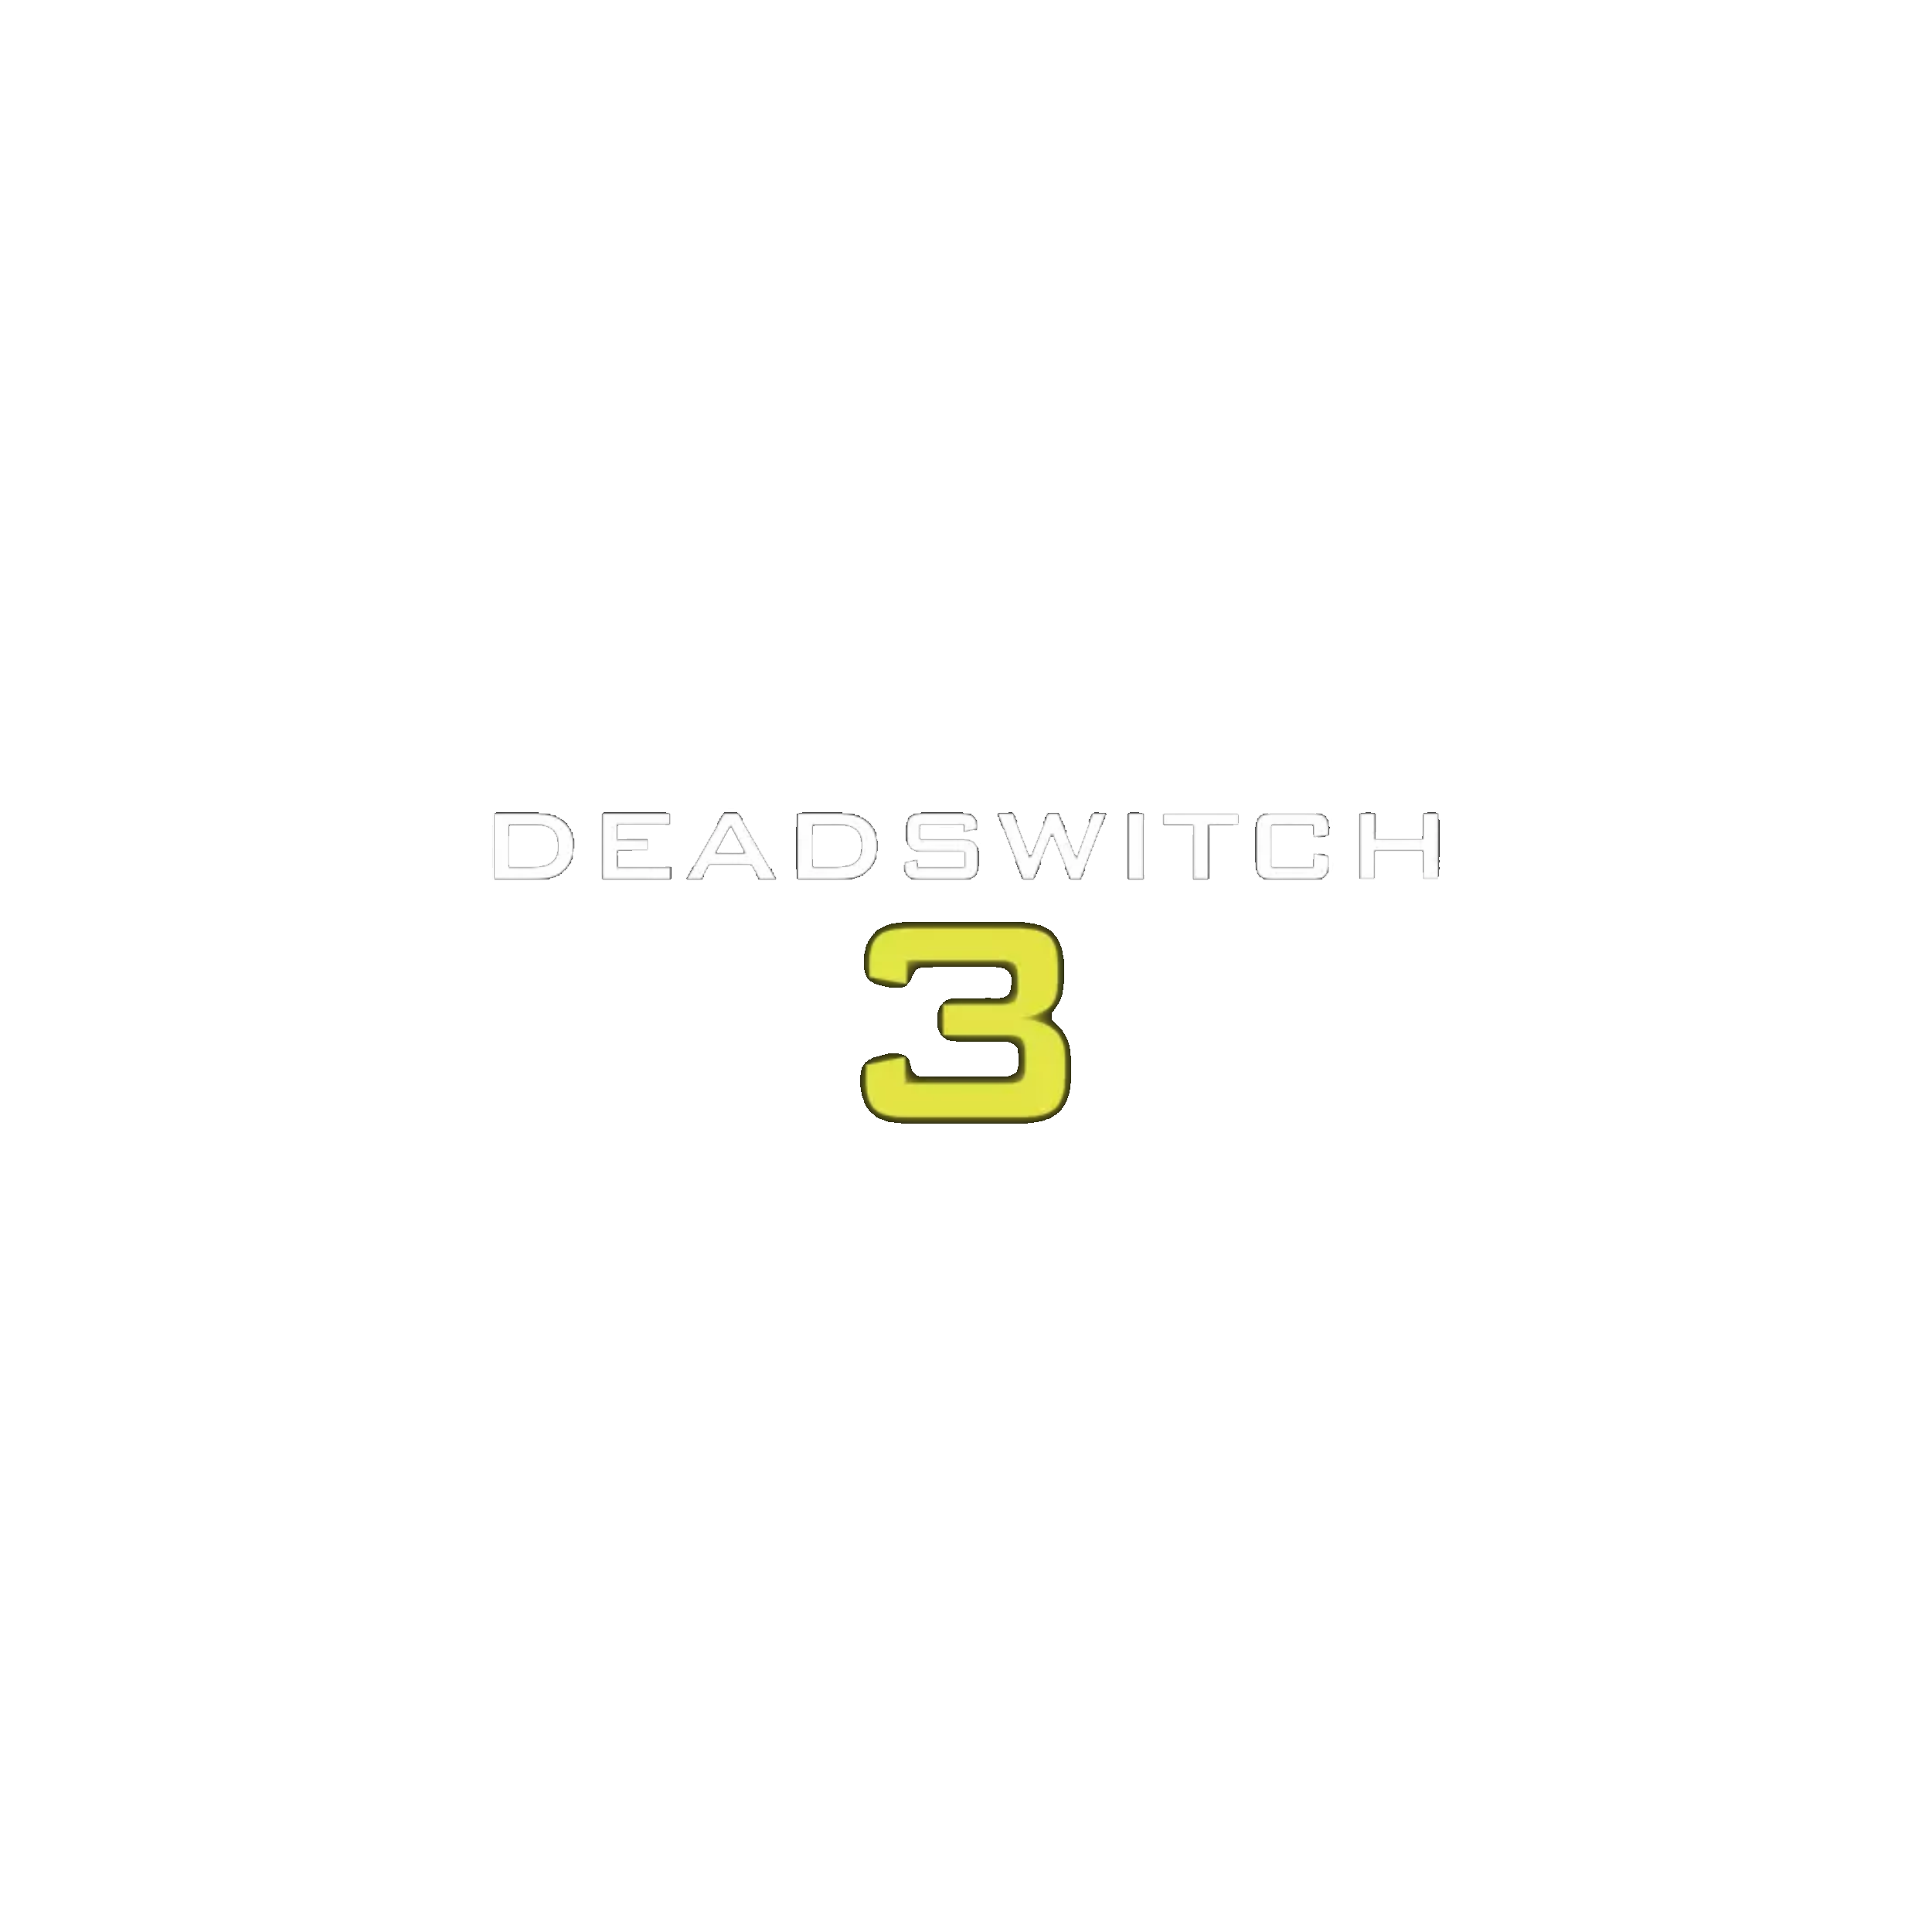 Deadswitch 3 logo